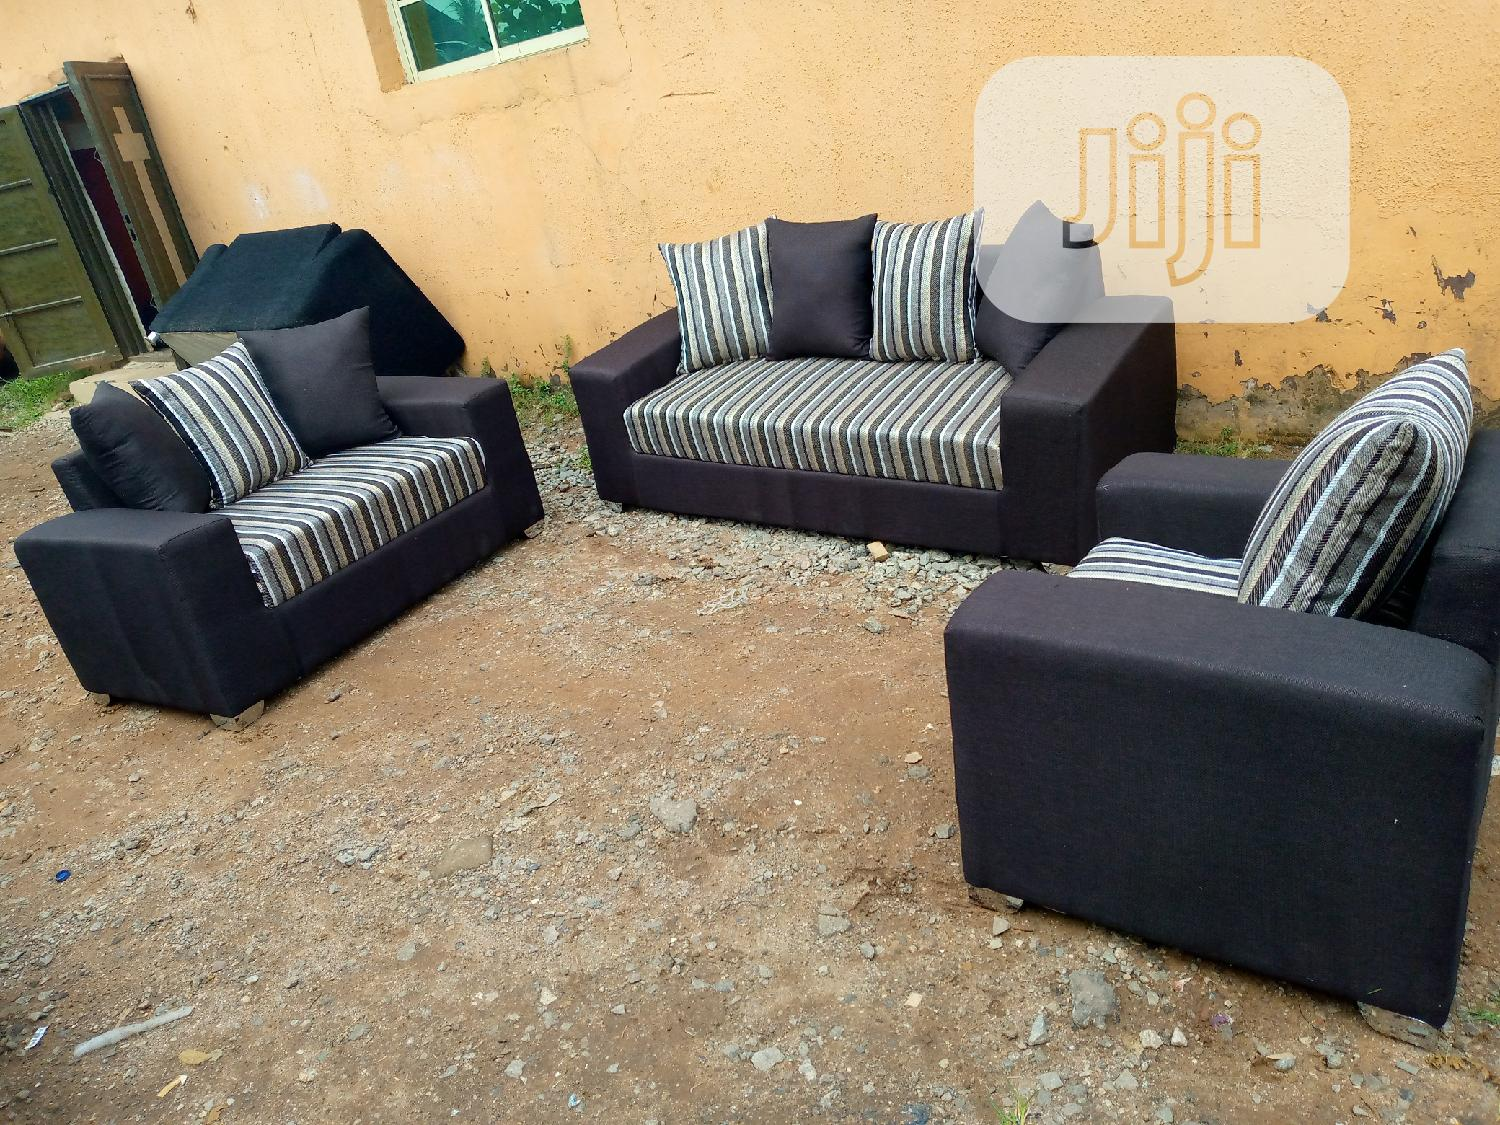 Archive: 6 Seaters Sofa Chairs With Pillows. Fabric Couches